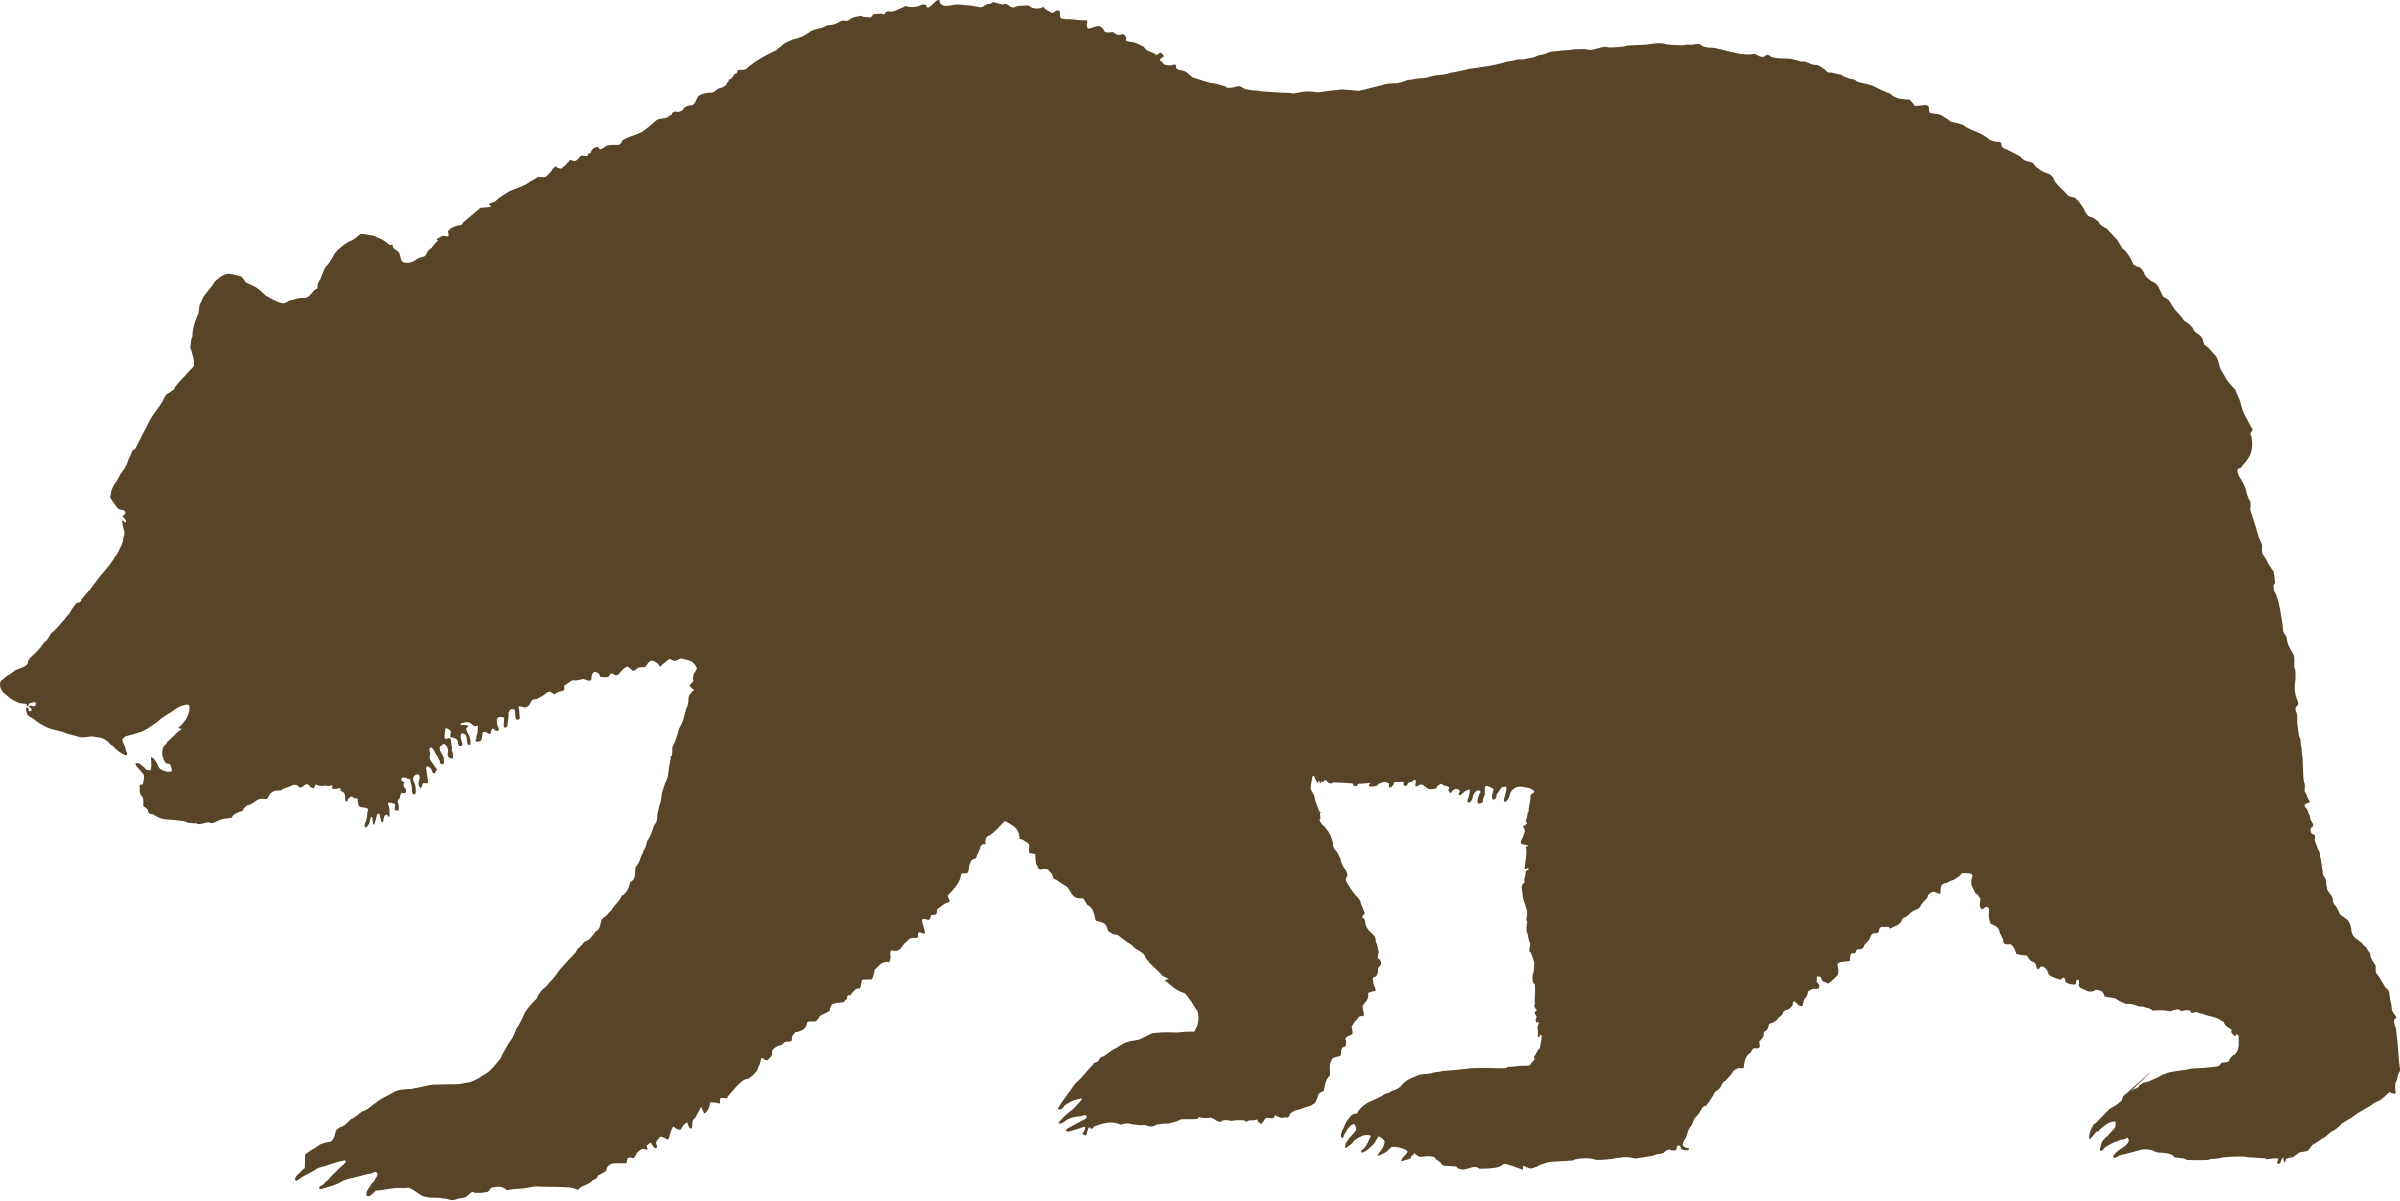 Clipart bear woods, Clipart bear woods Transparent FREE for.